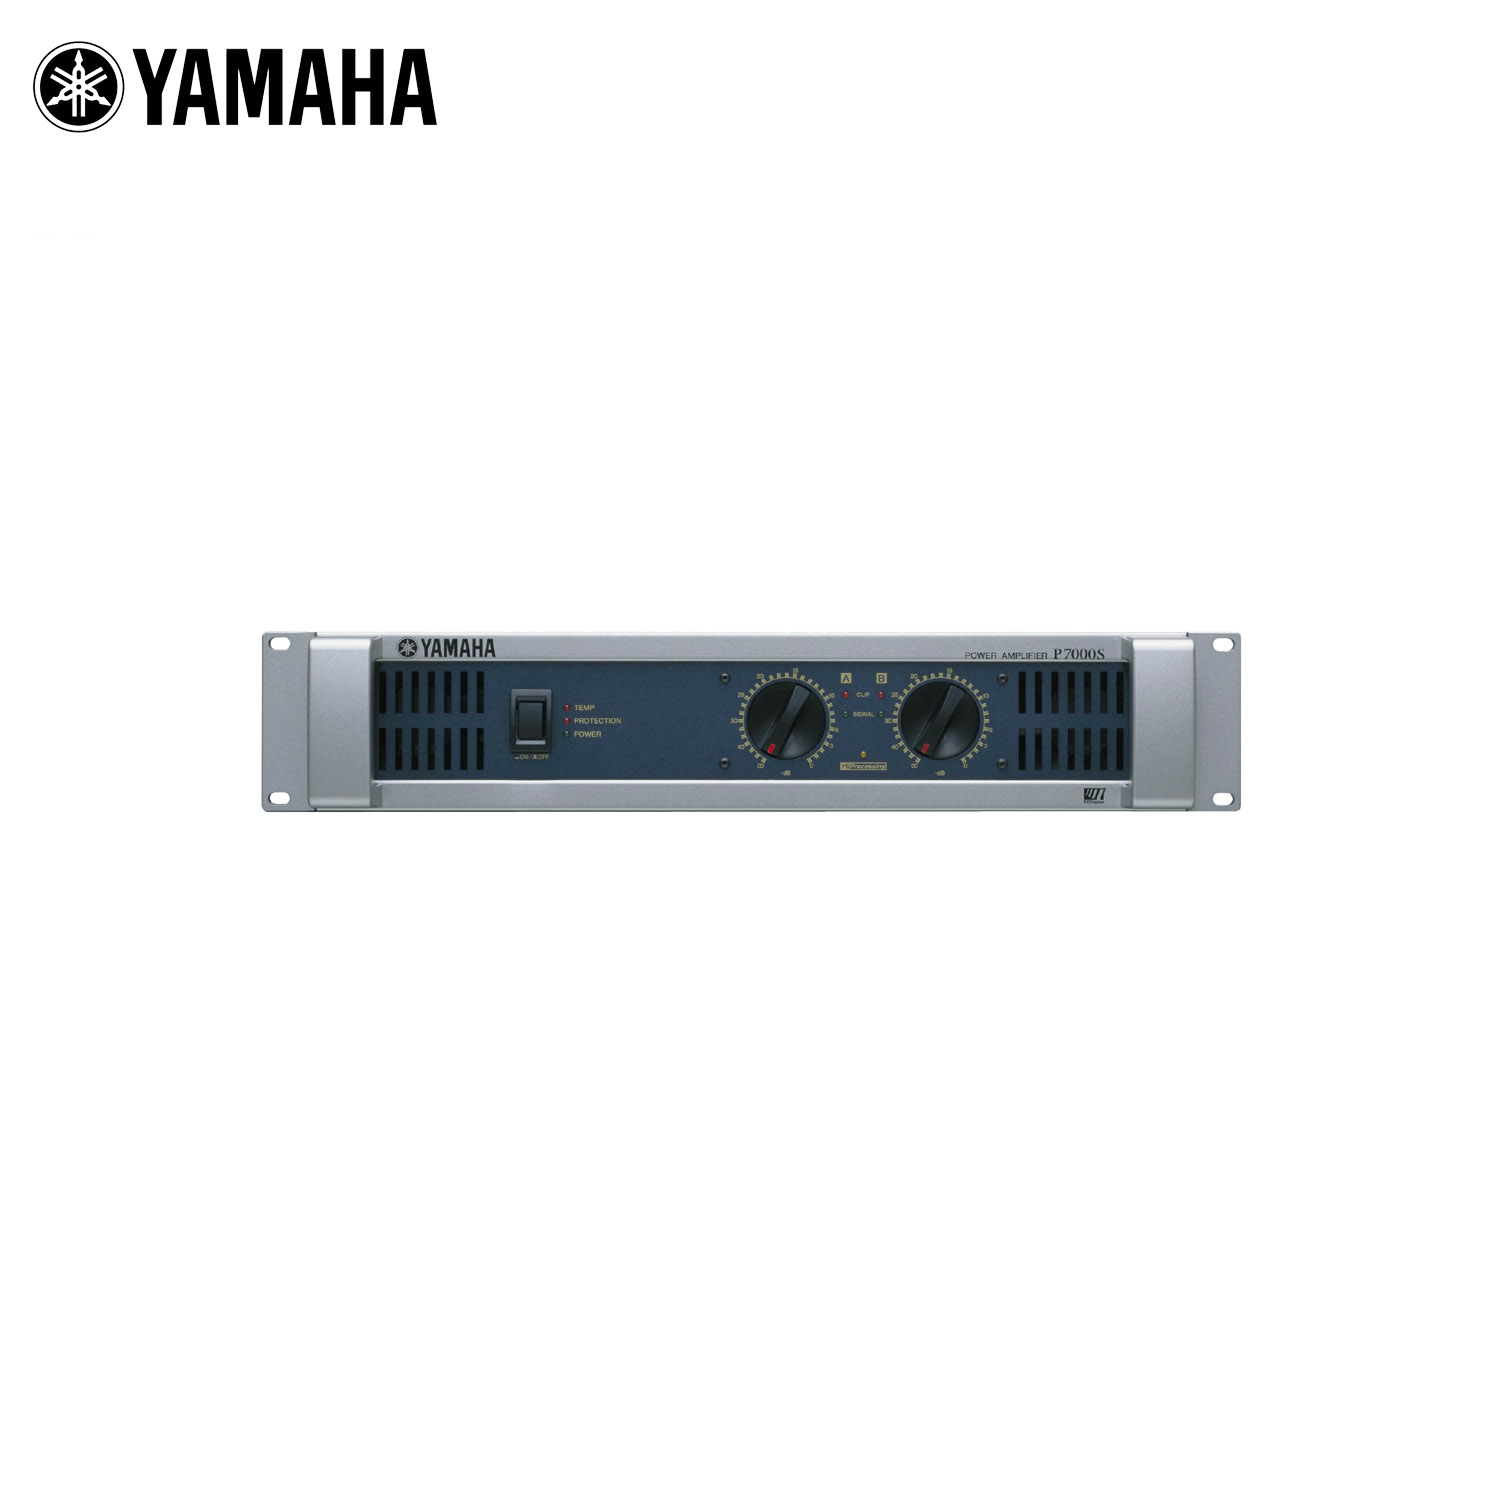 Yamaha/yamaha p7000s professional amplifier/ktv amplifier/power amplifier power amplifier